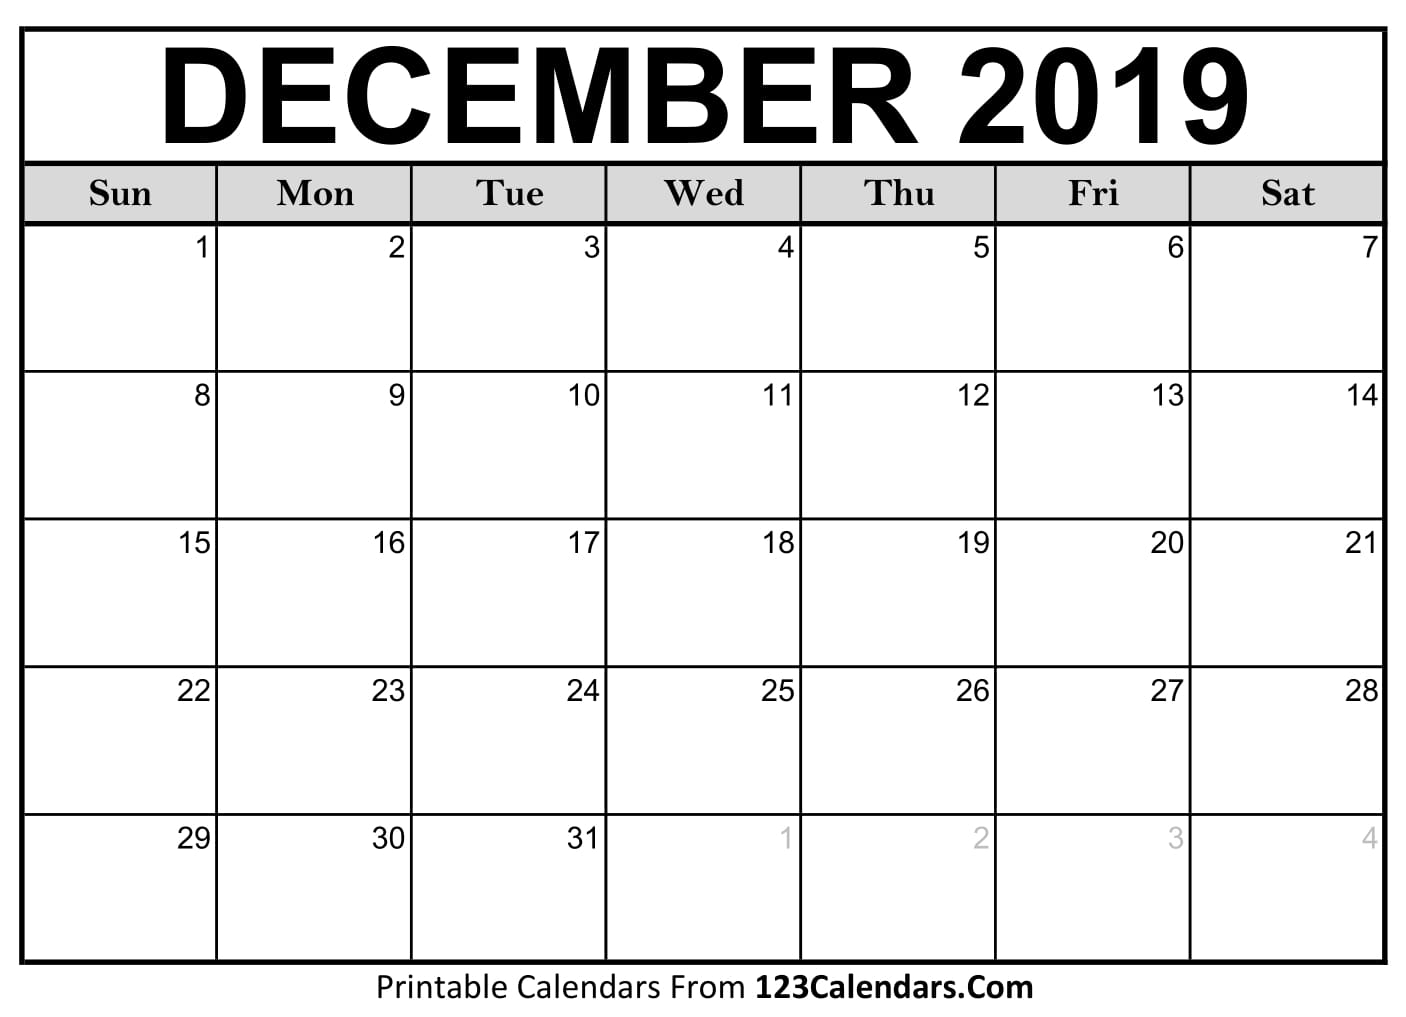 Picture Of Calendar For December 2019 Blank December 2019 Calendar | Apache OpenOffice Templates